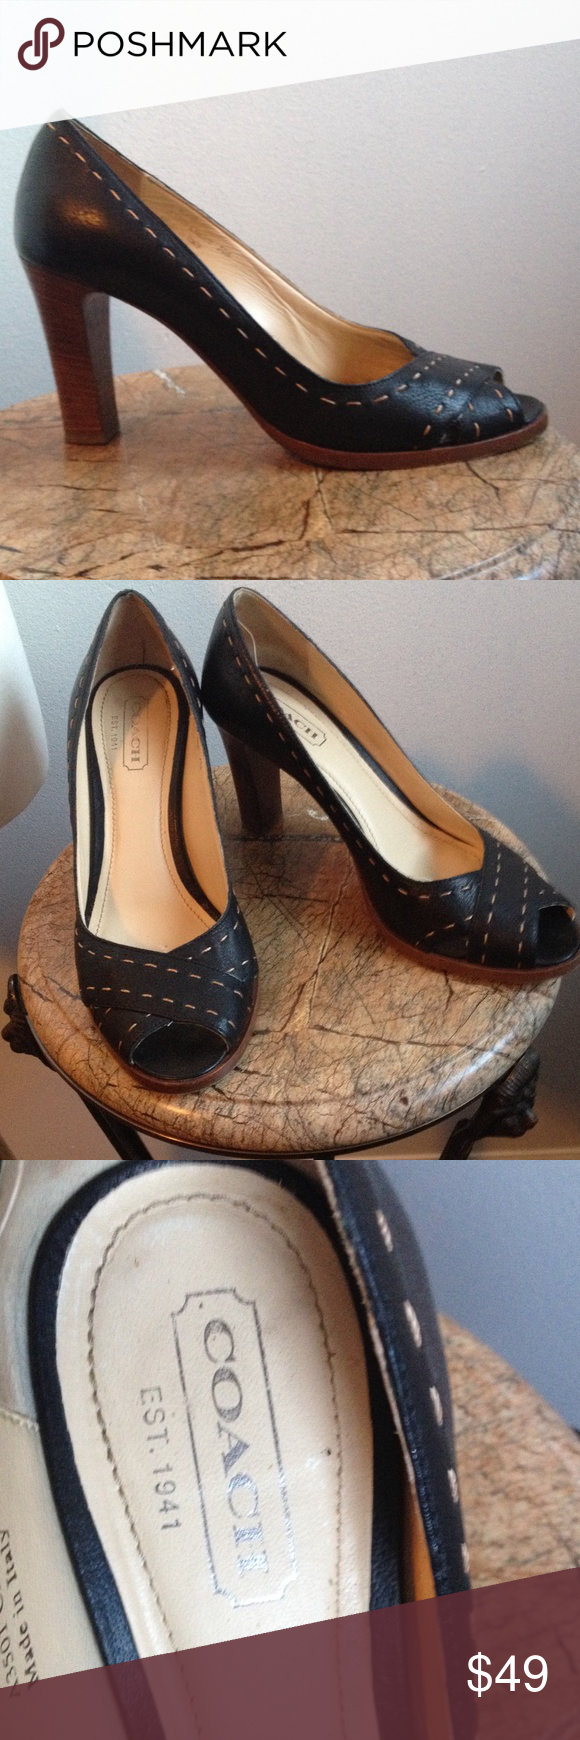 de17c4e7e88 Coach Shoes Sz 8.5 Clarice Style Open-Toed Pumps Made in Italy Black  Leather Pumps